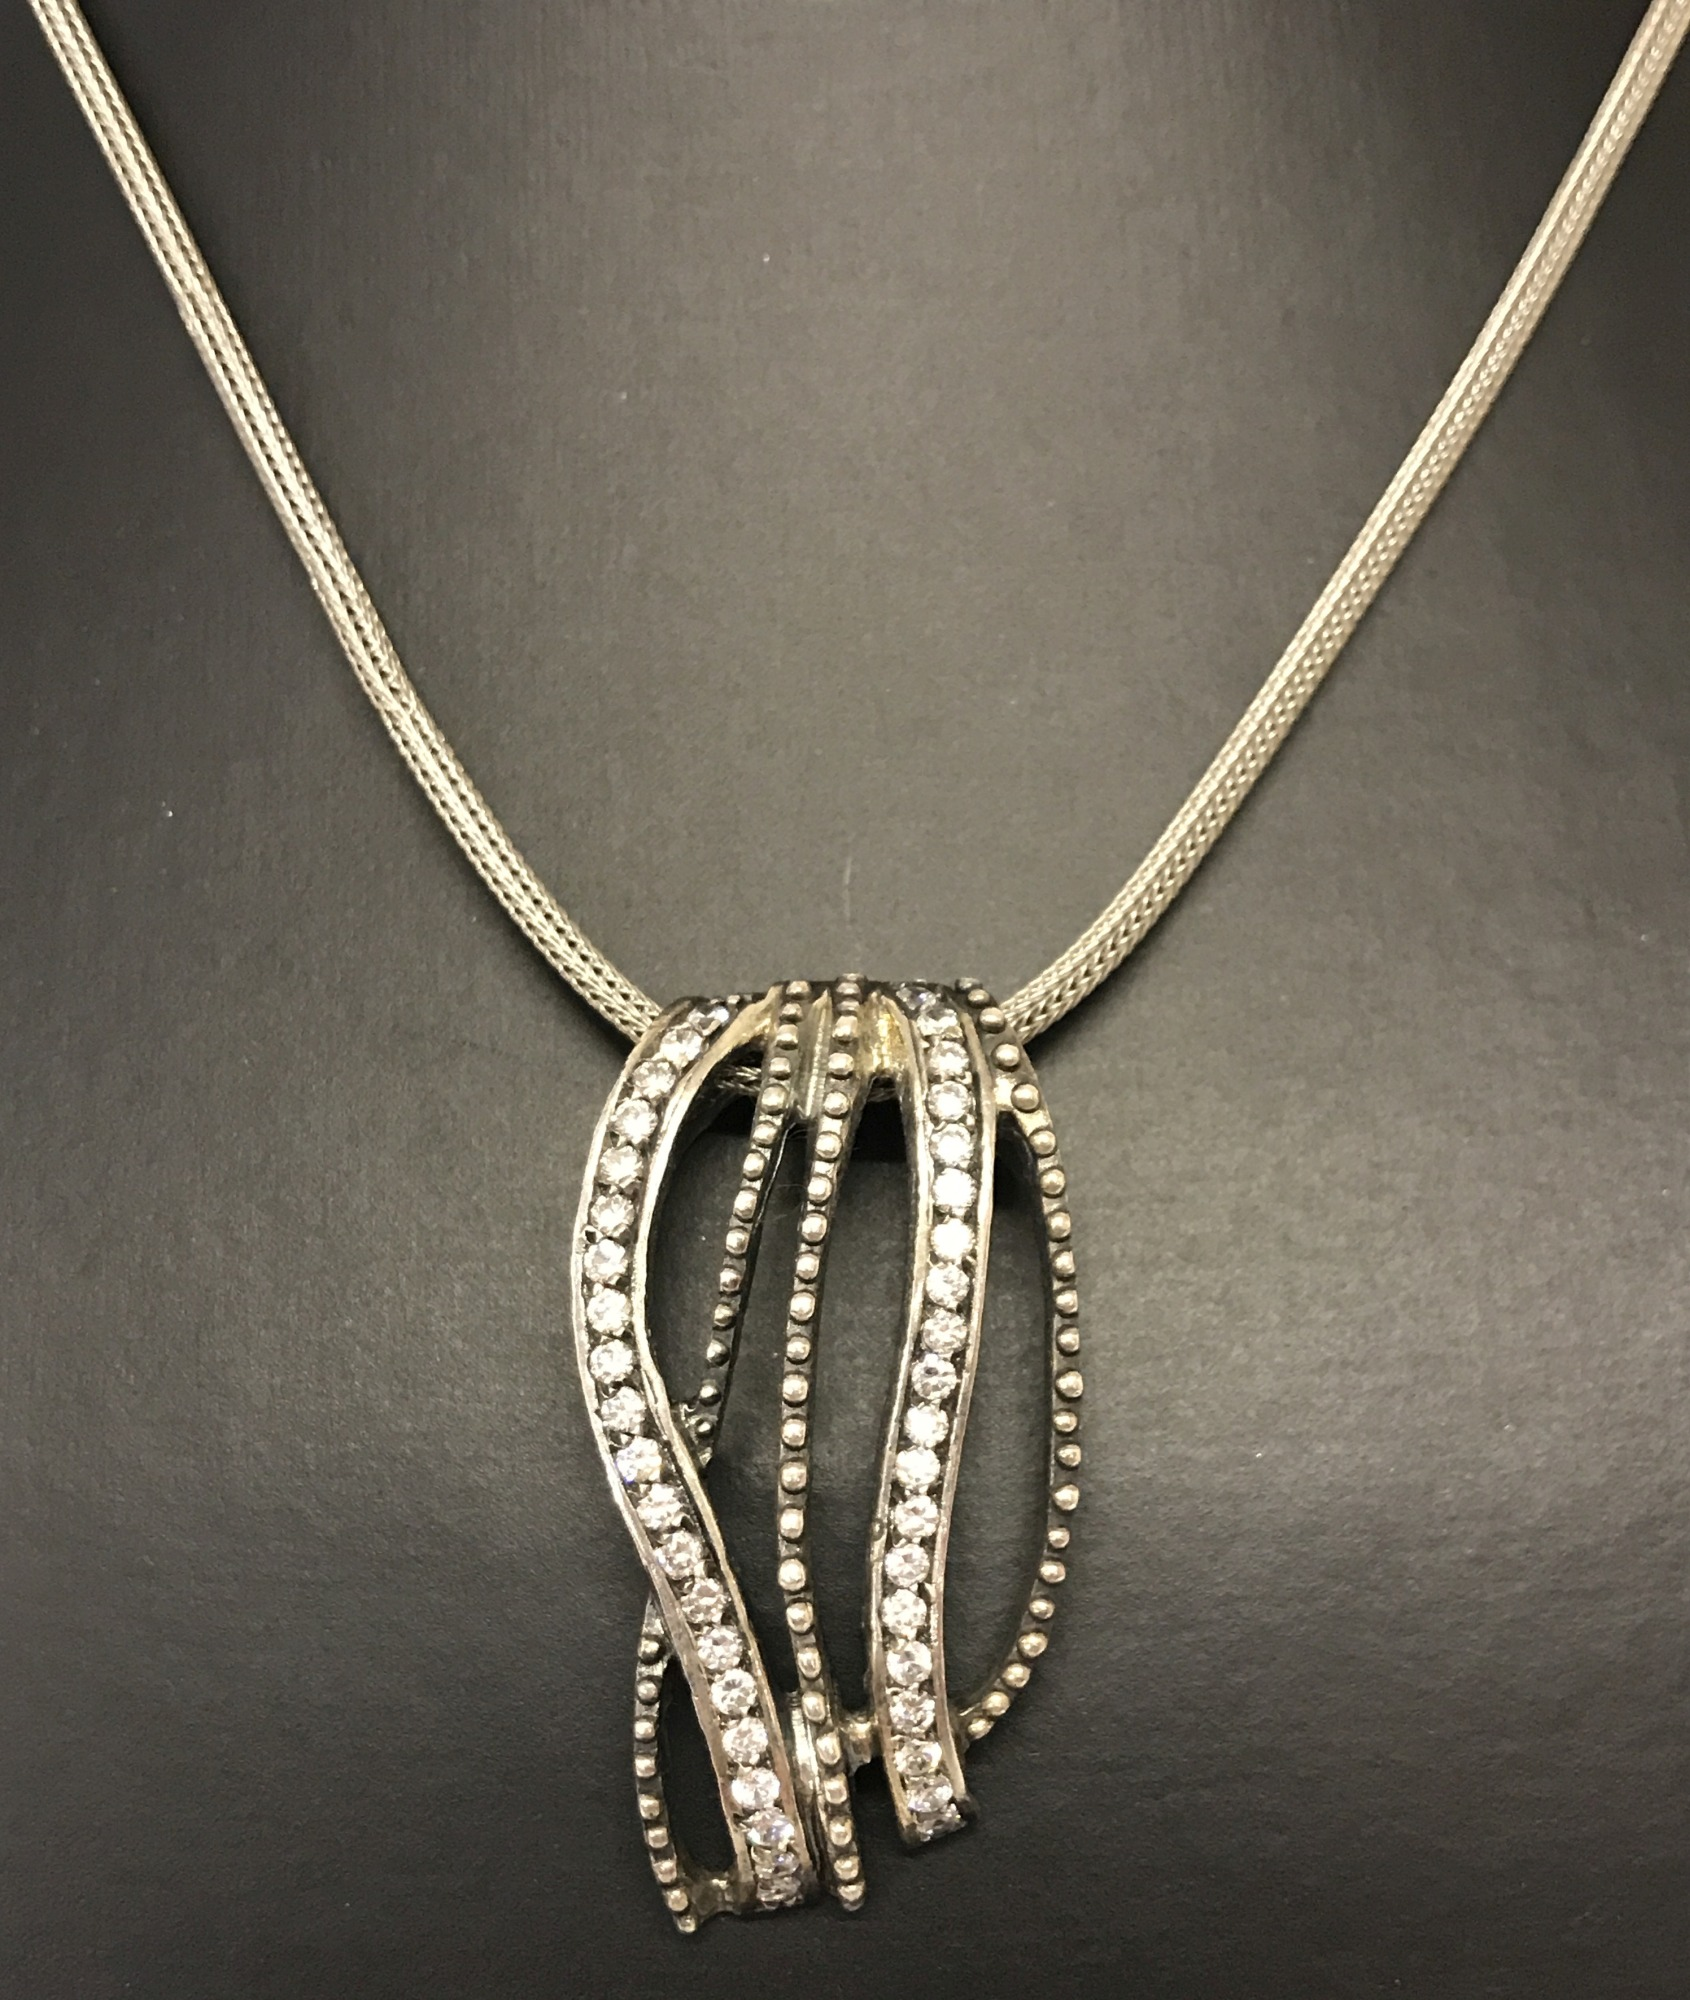 Lot 33 - A Portuguese contemporary silver pendant set with clear stones on a mesh style chain.